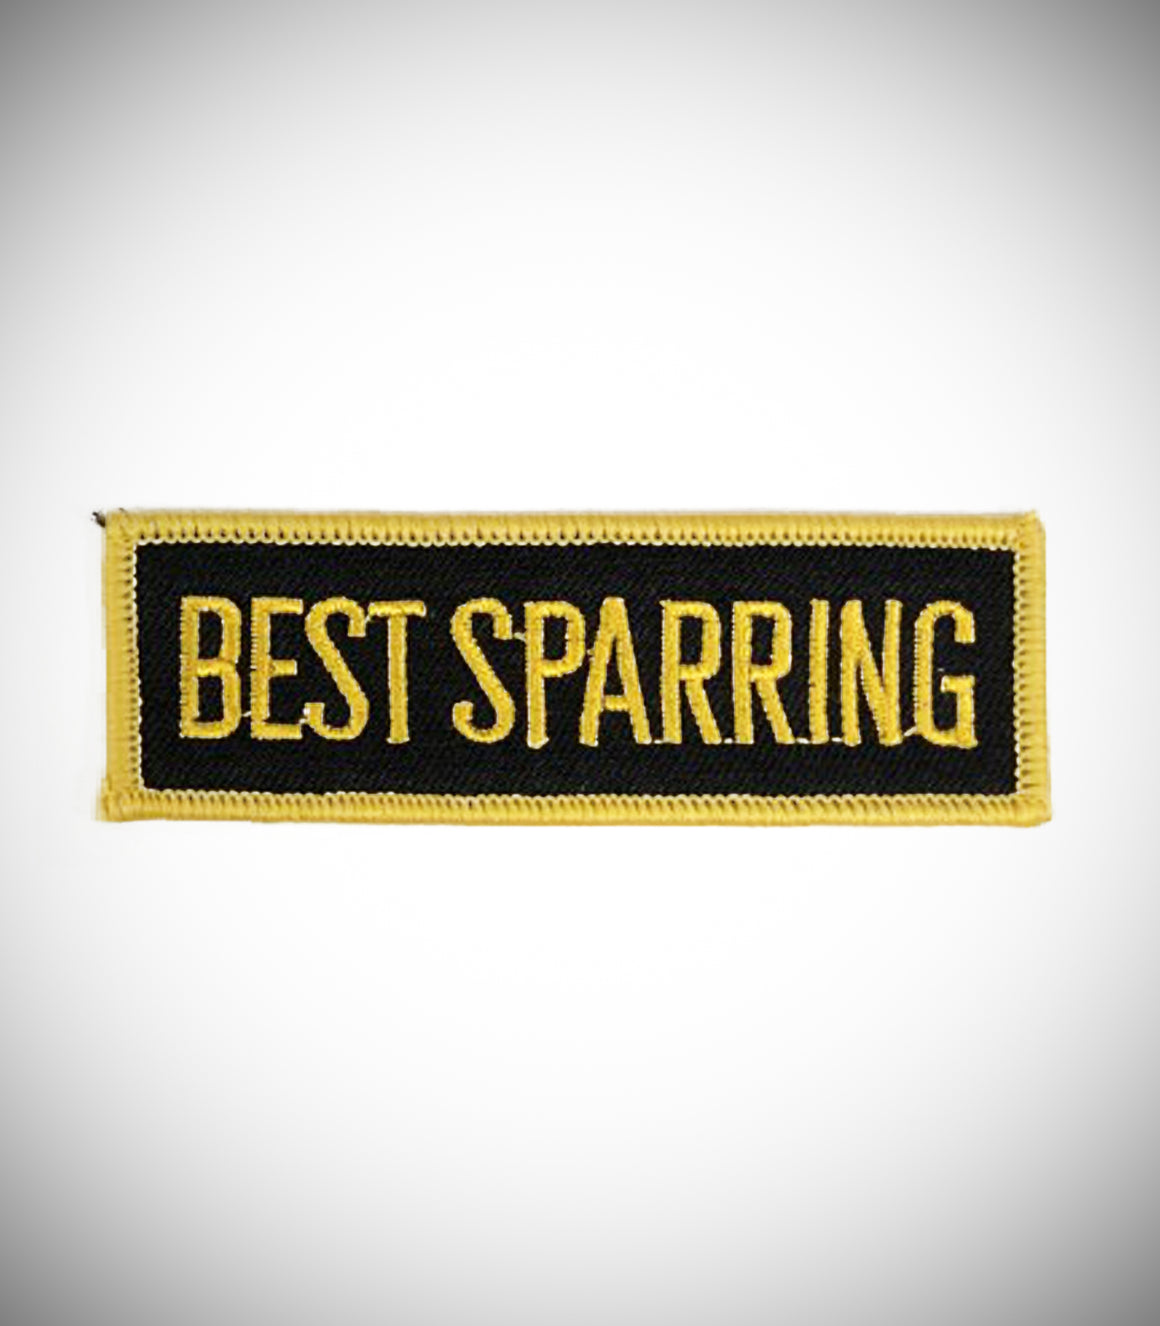 BEST SPARRING SEW ON PATCH